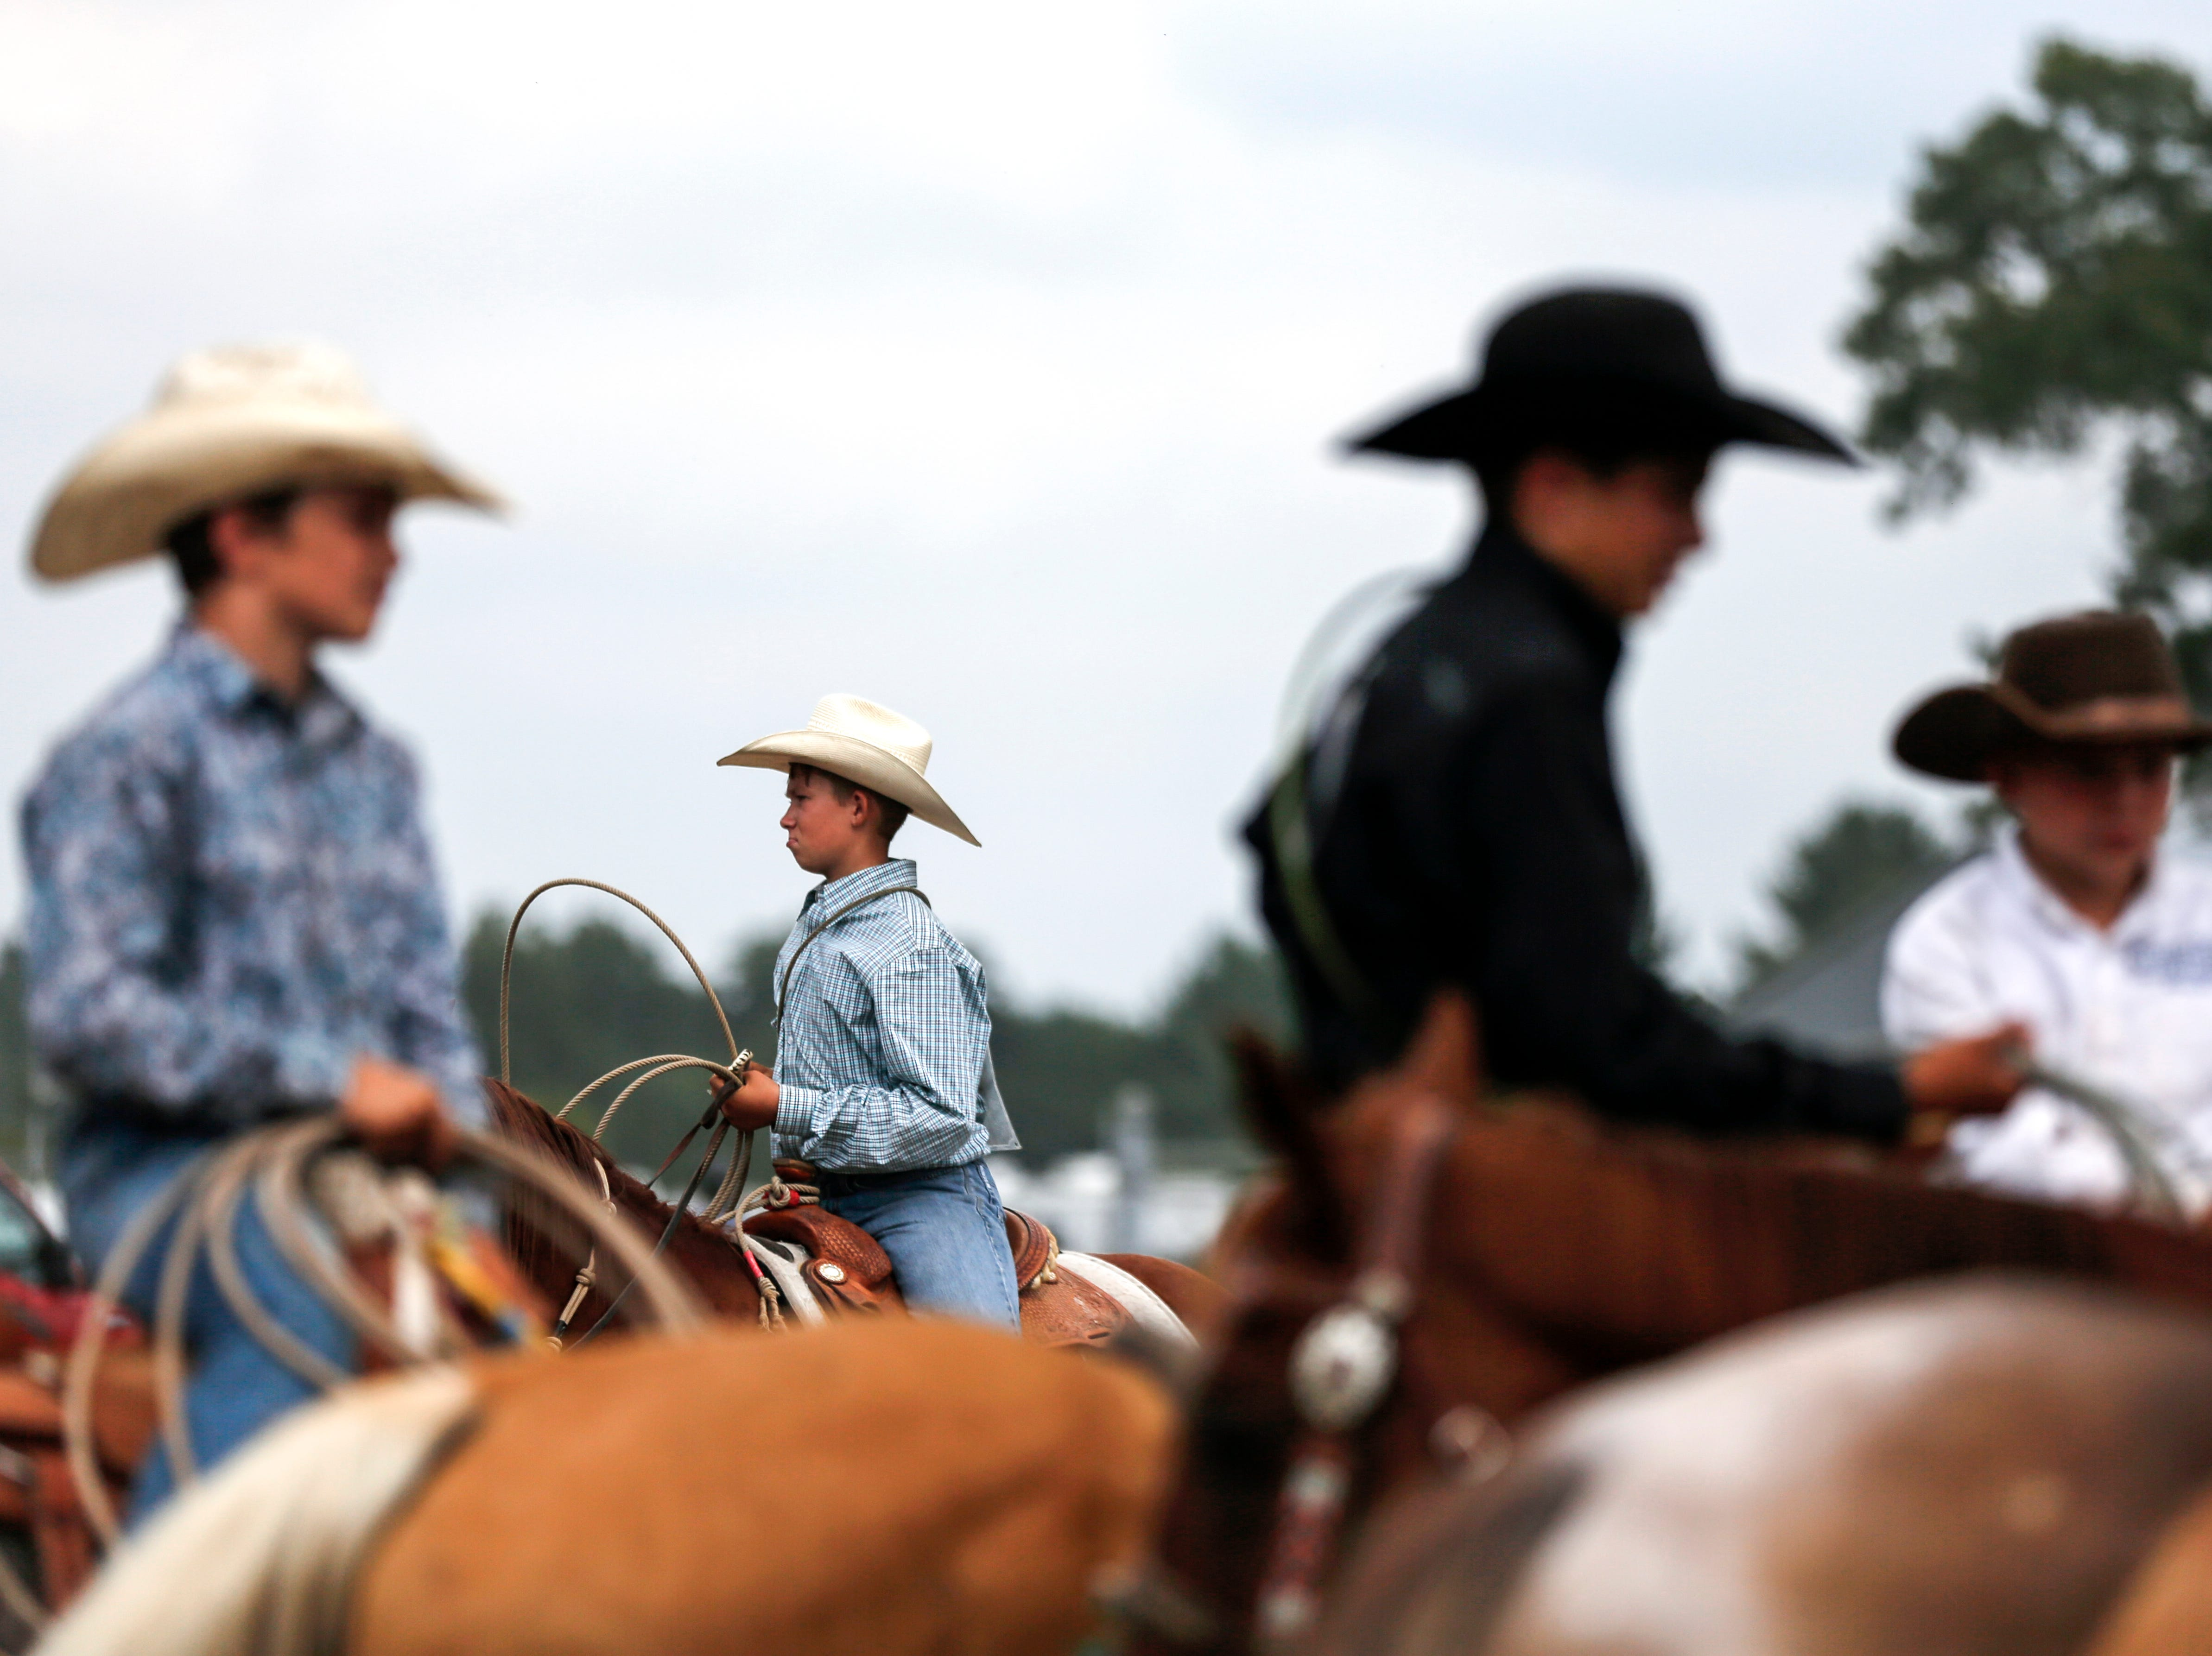 Riders wait for their turn to compete in the calf roping competition during the Amherst Little Britches Wisconsin Rodeo in Amherst, Wis., August 17, 2018.